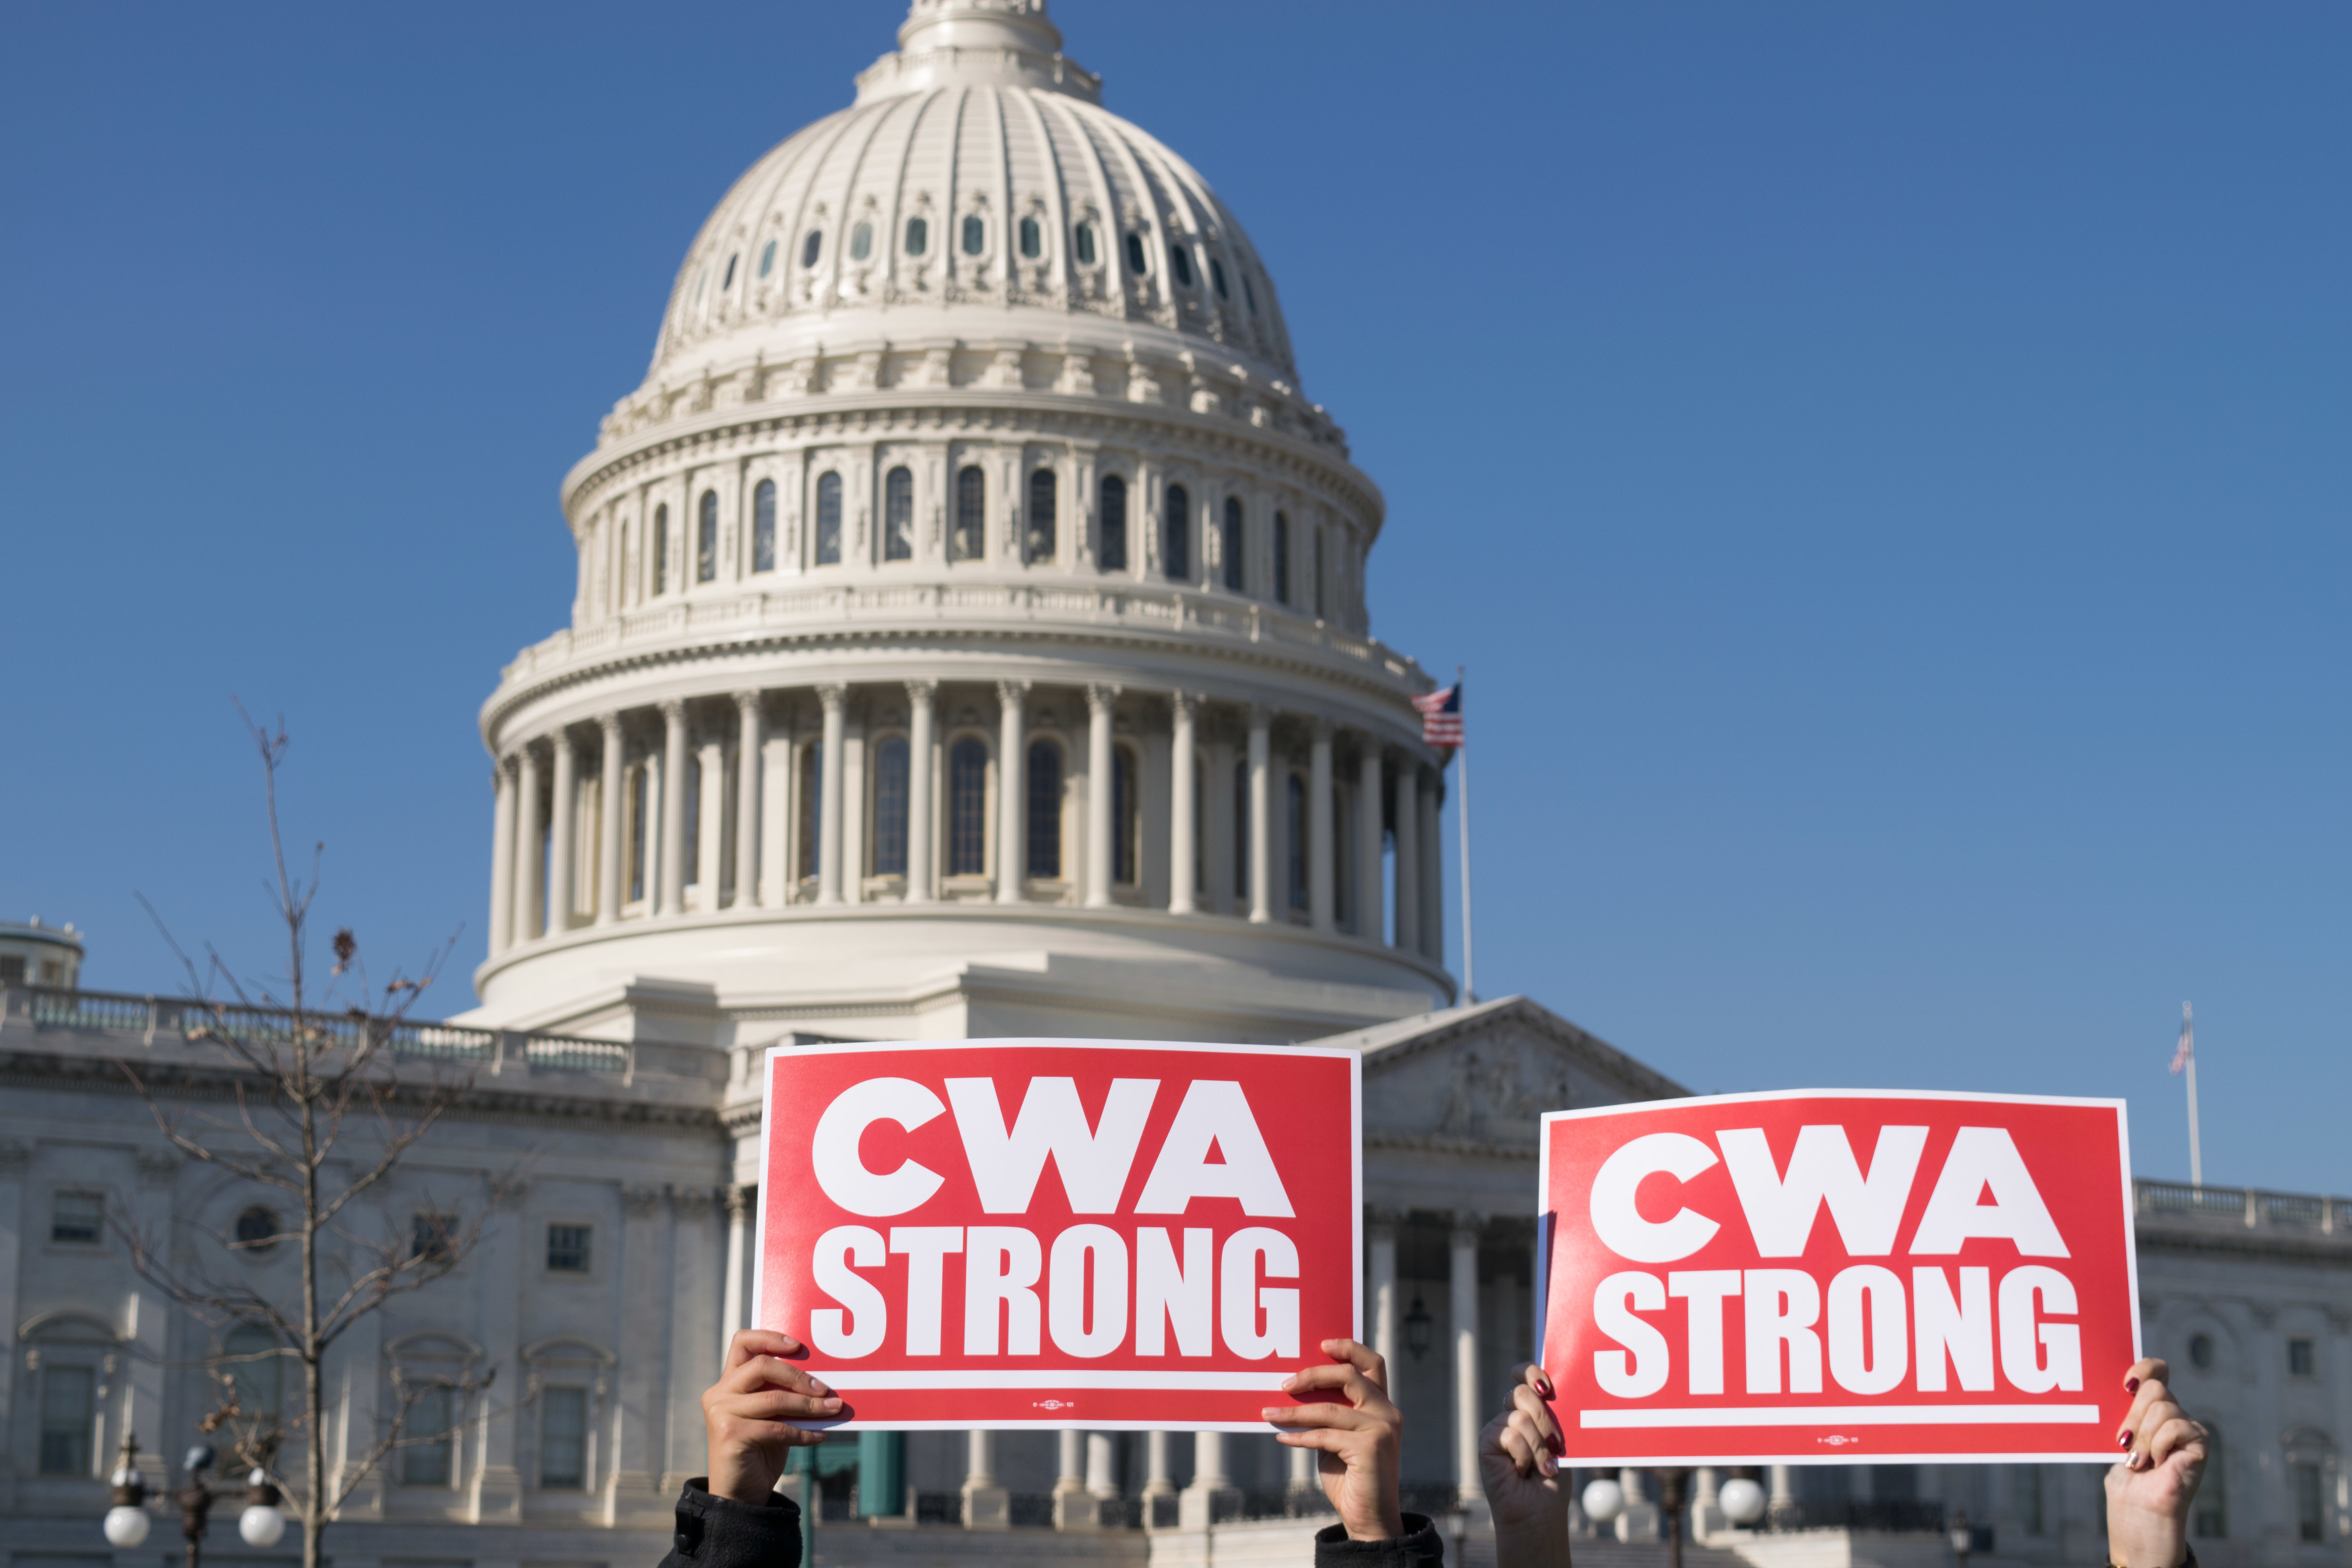 CWA STRONG at the US Capitol